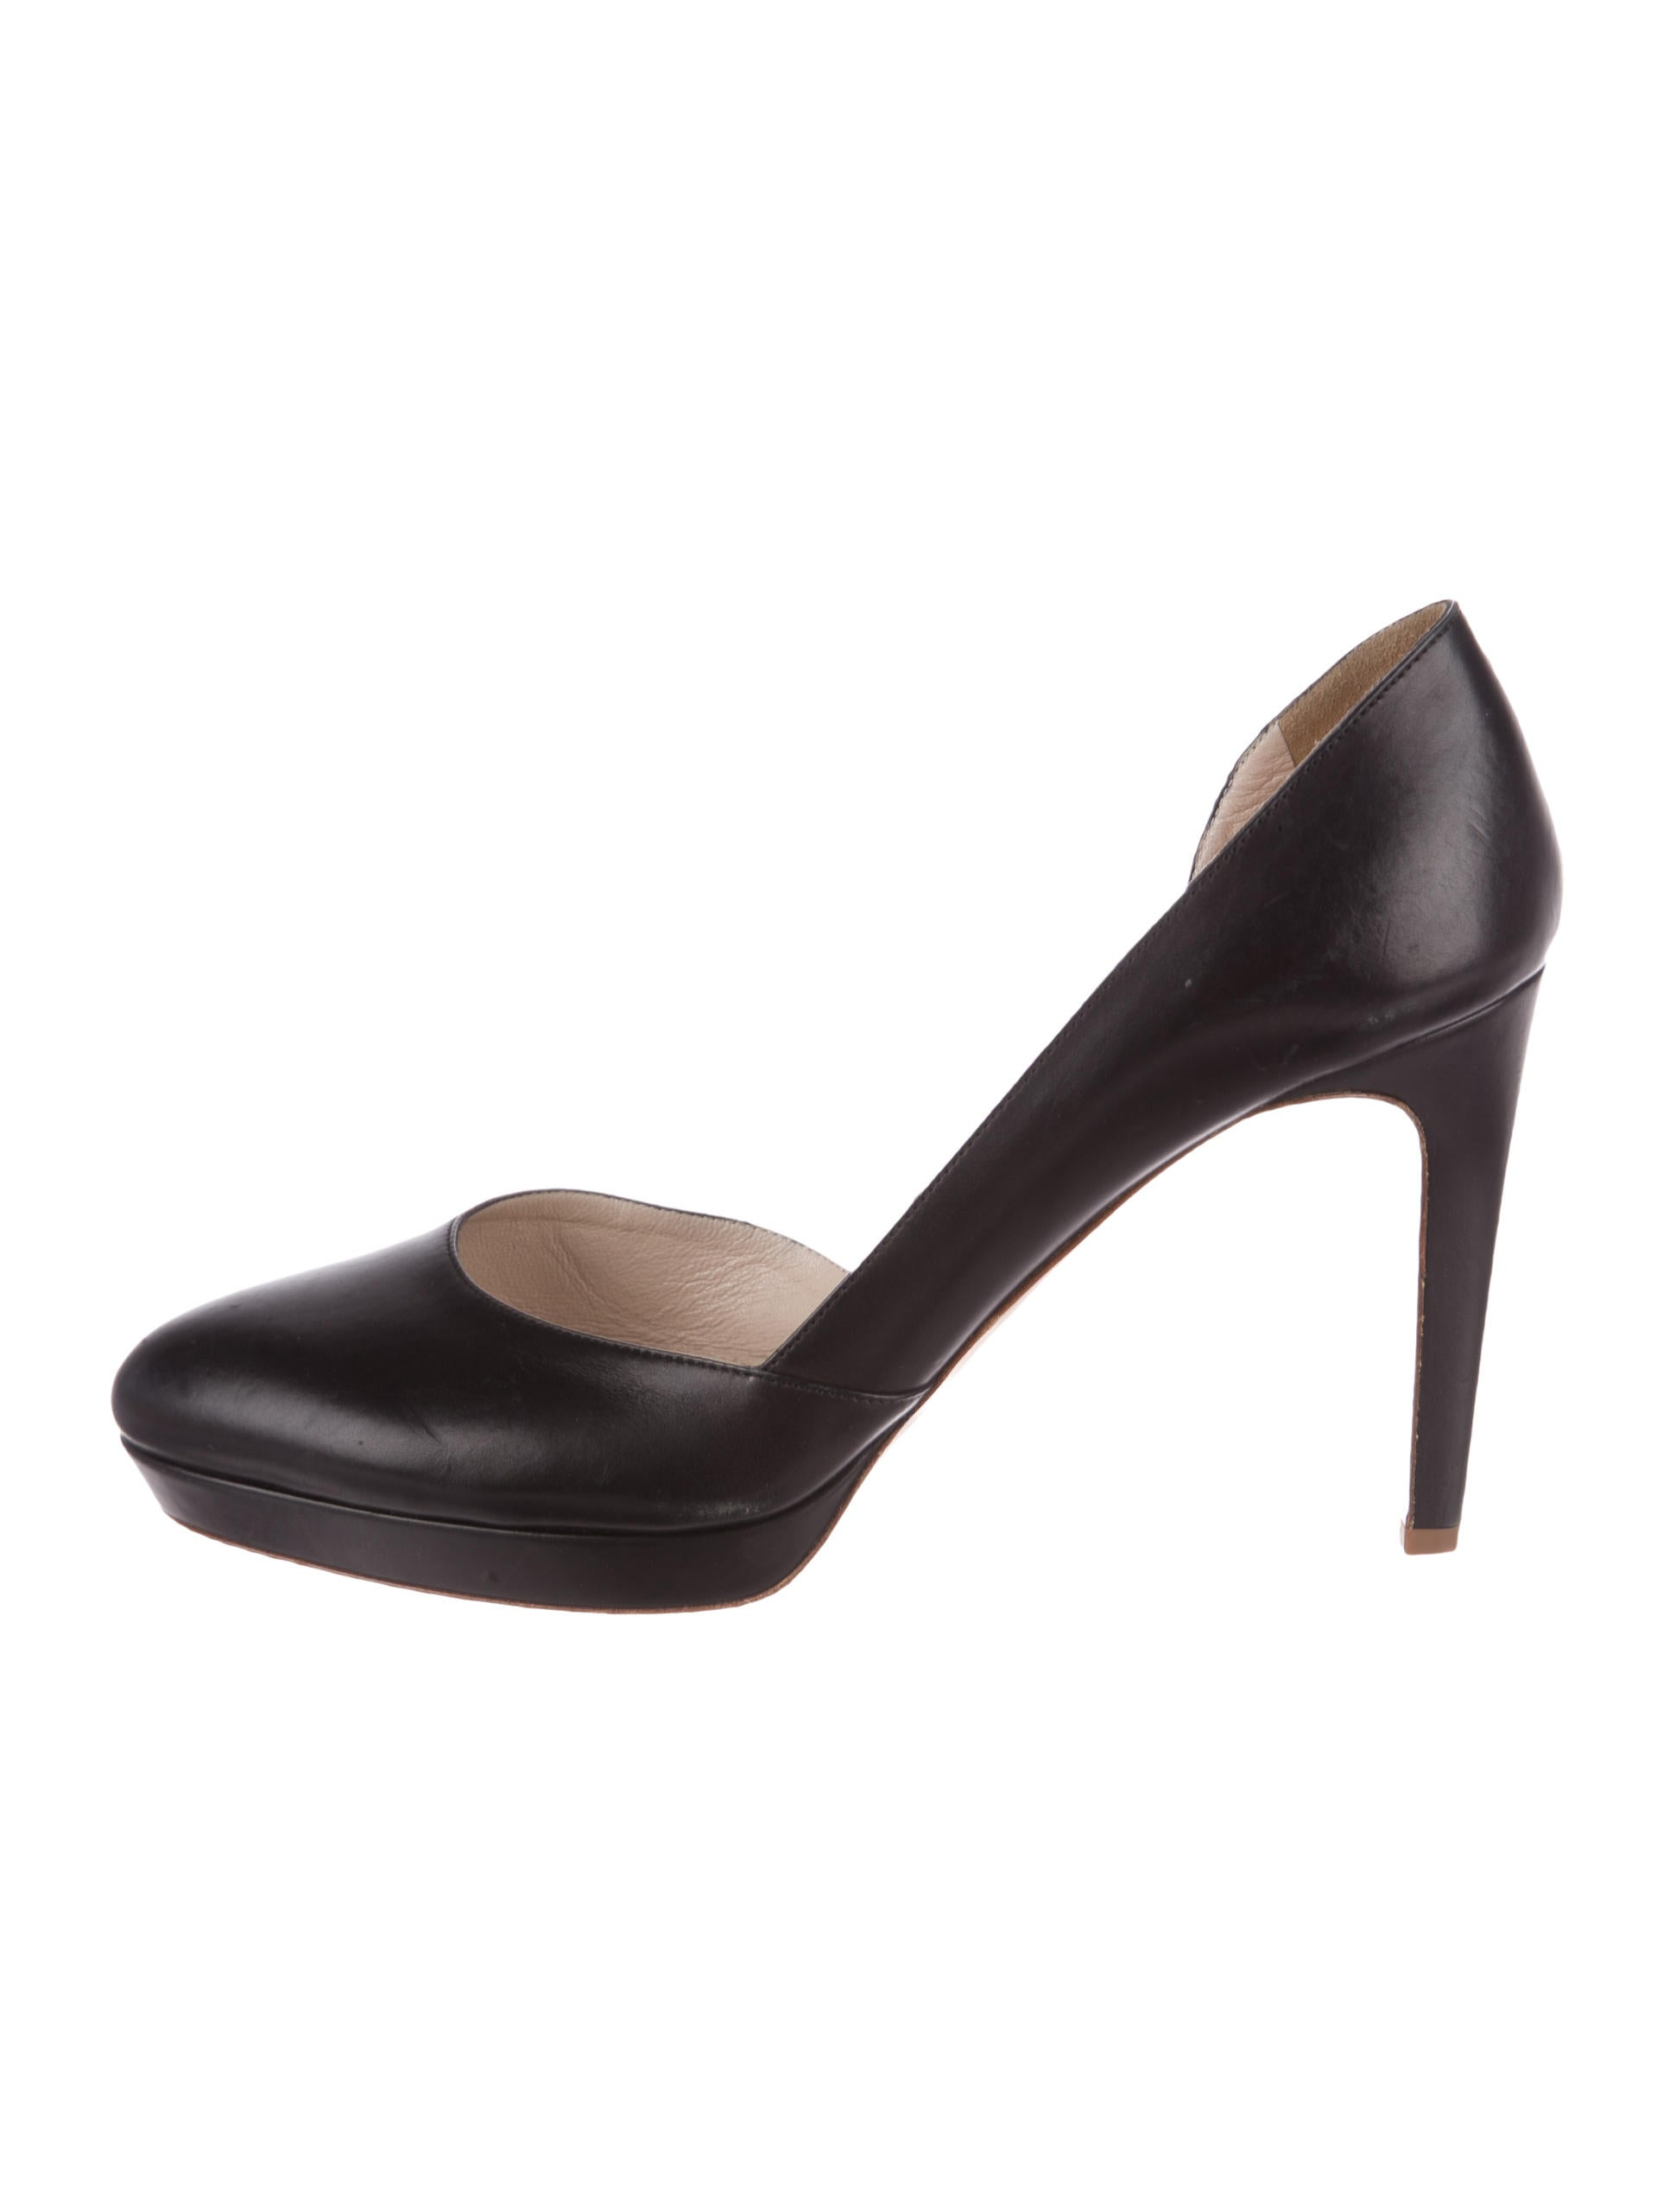 Jil Sander Leather D'Orsay Pumps outlet for cheap discount wiki professional cheap online QWp6ChnH